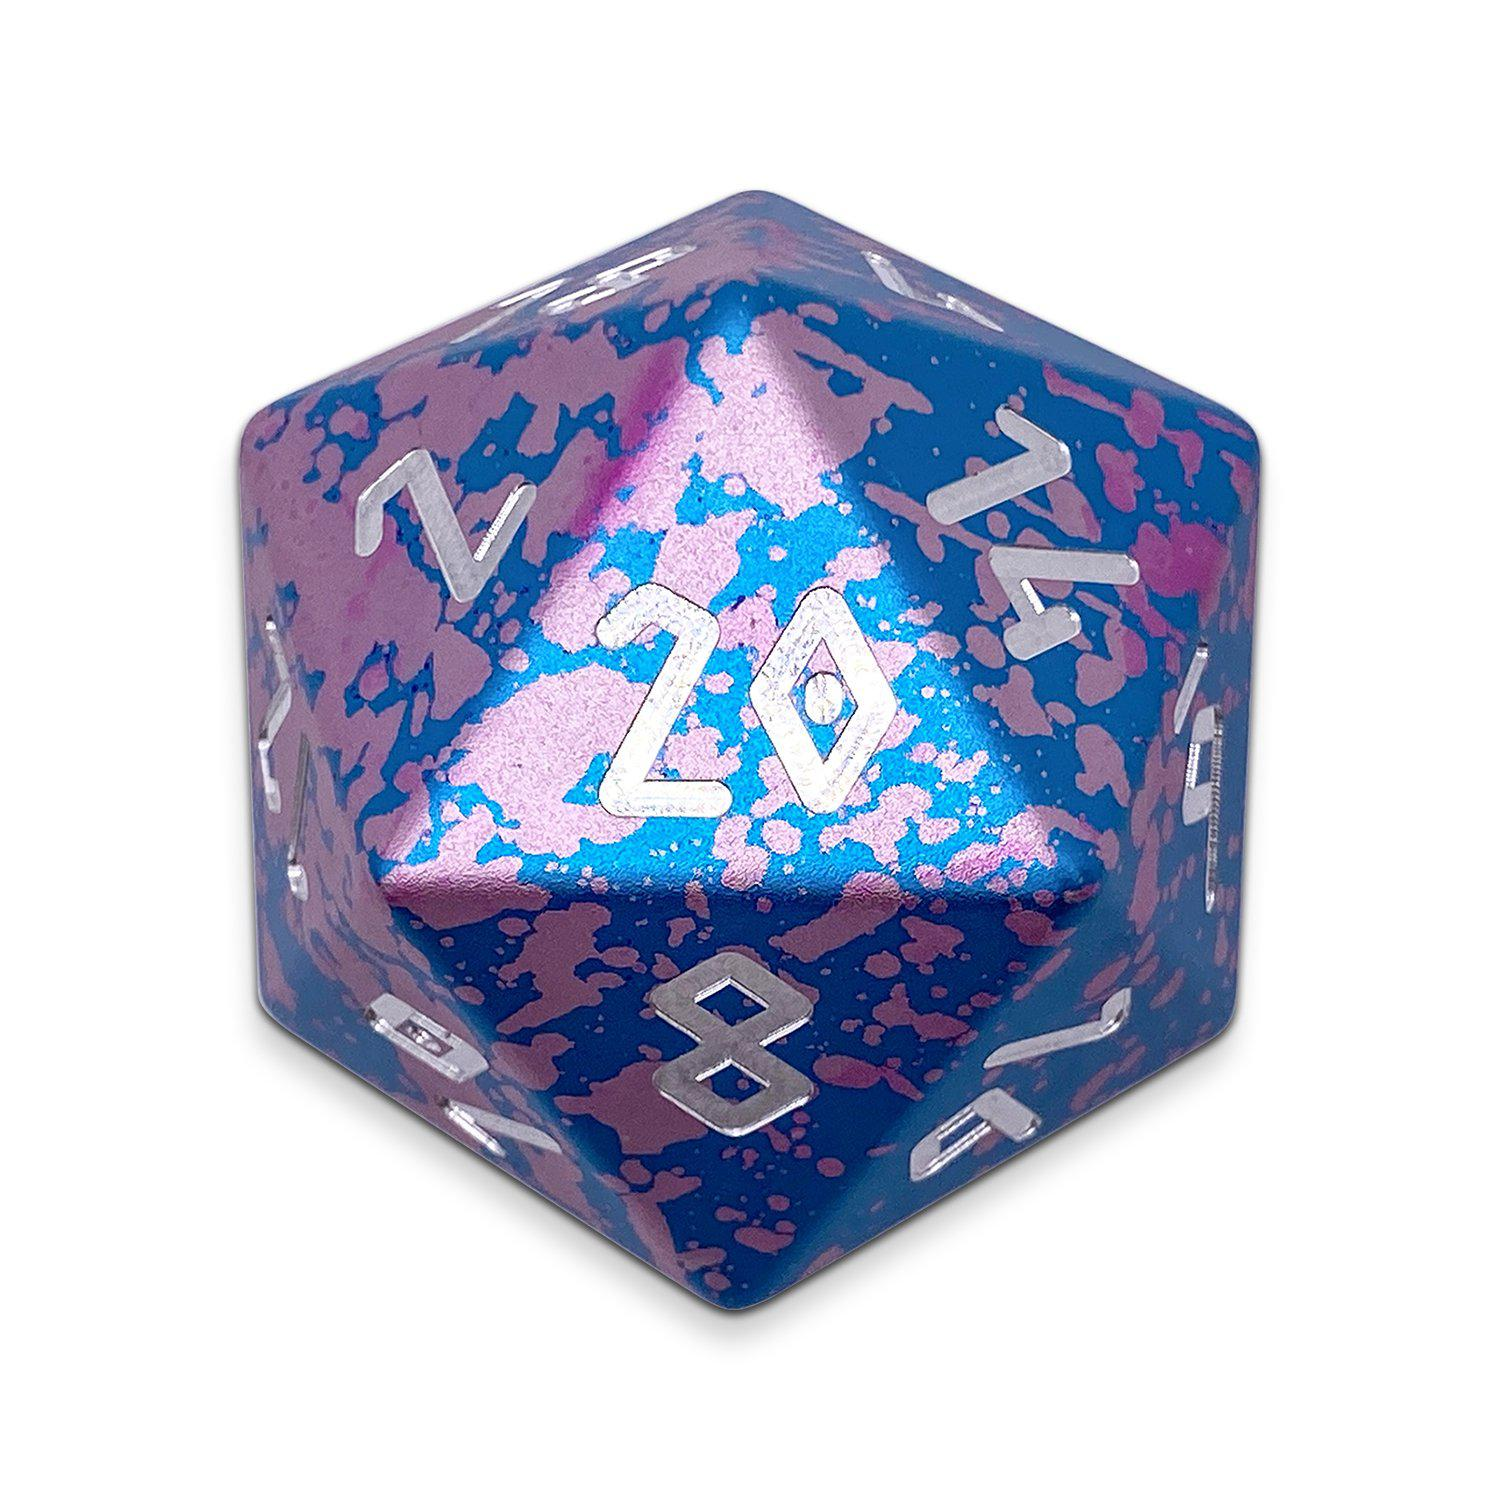 Miami Dice - Wondrous Boulder® 55mm D20 6063 Aircraft Grade Aluminum Metal Die